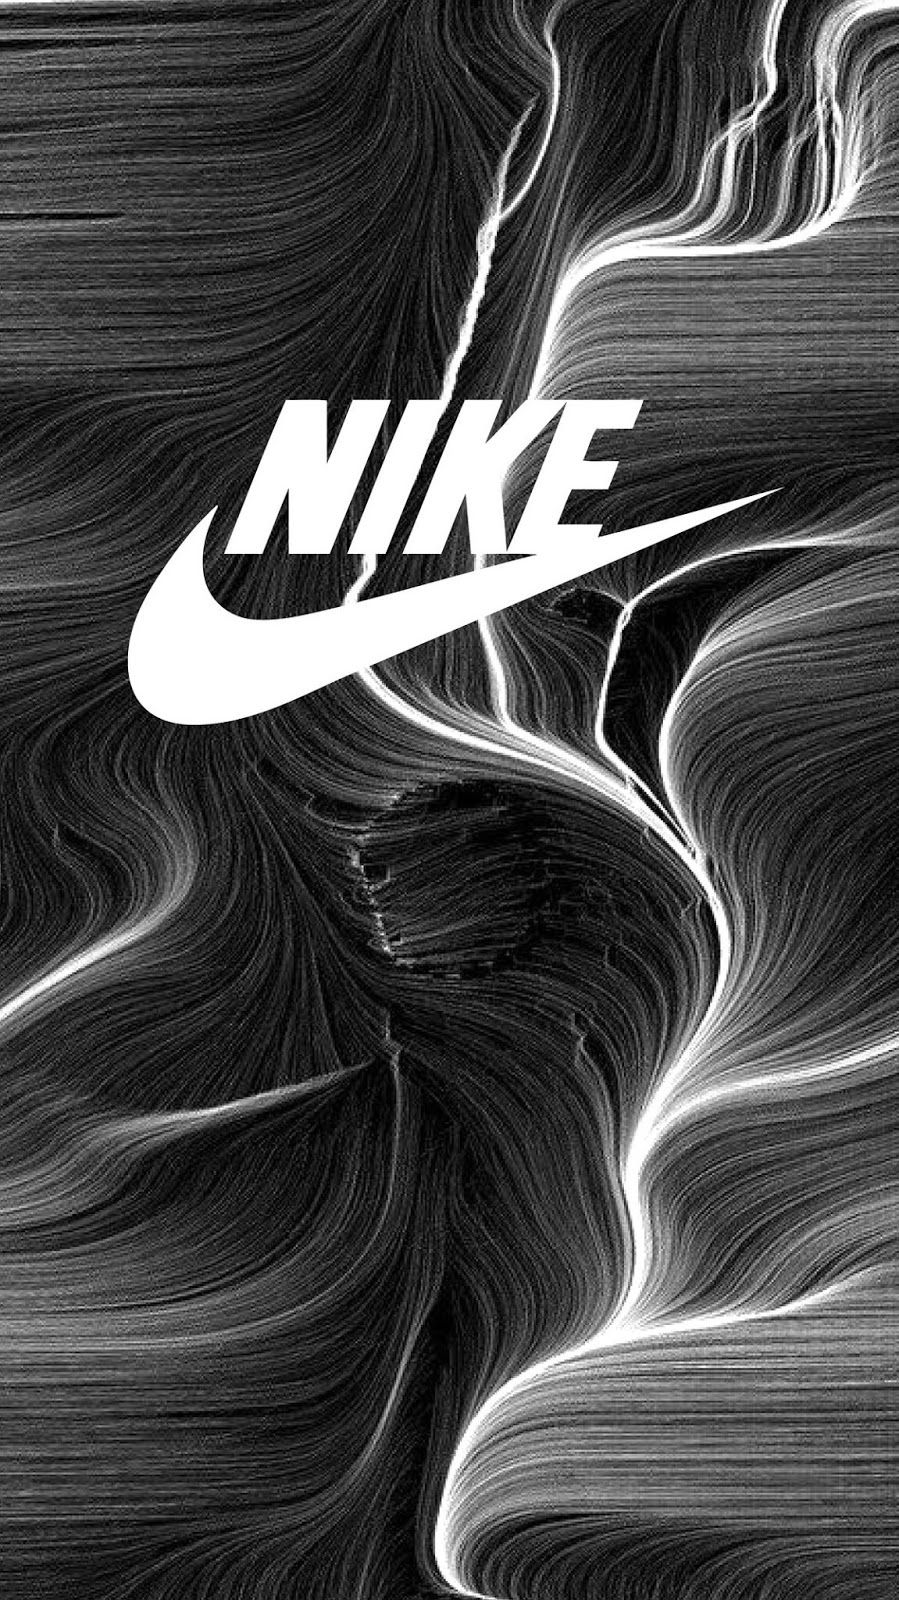 Nike Iphone Wallpapers Hd Nike Wallpaper Nike Wallpaper Iphone Cool Nike Wallpapers